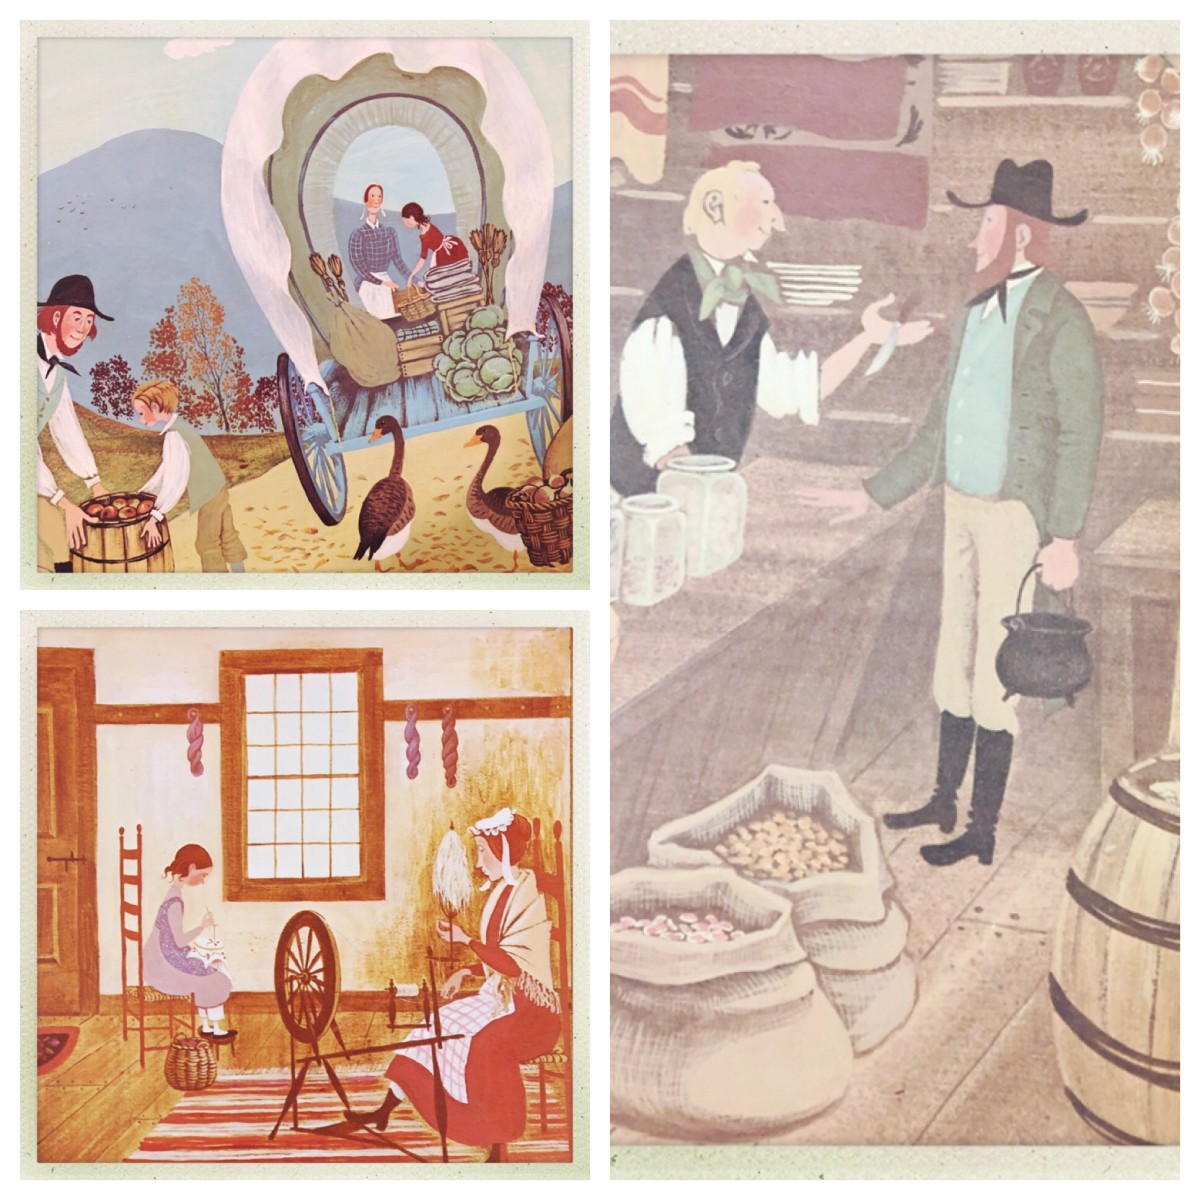 Illustrations from the book.